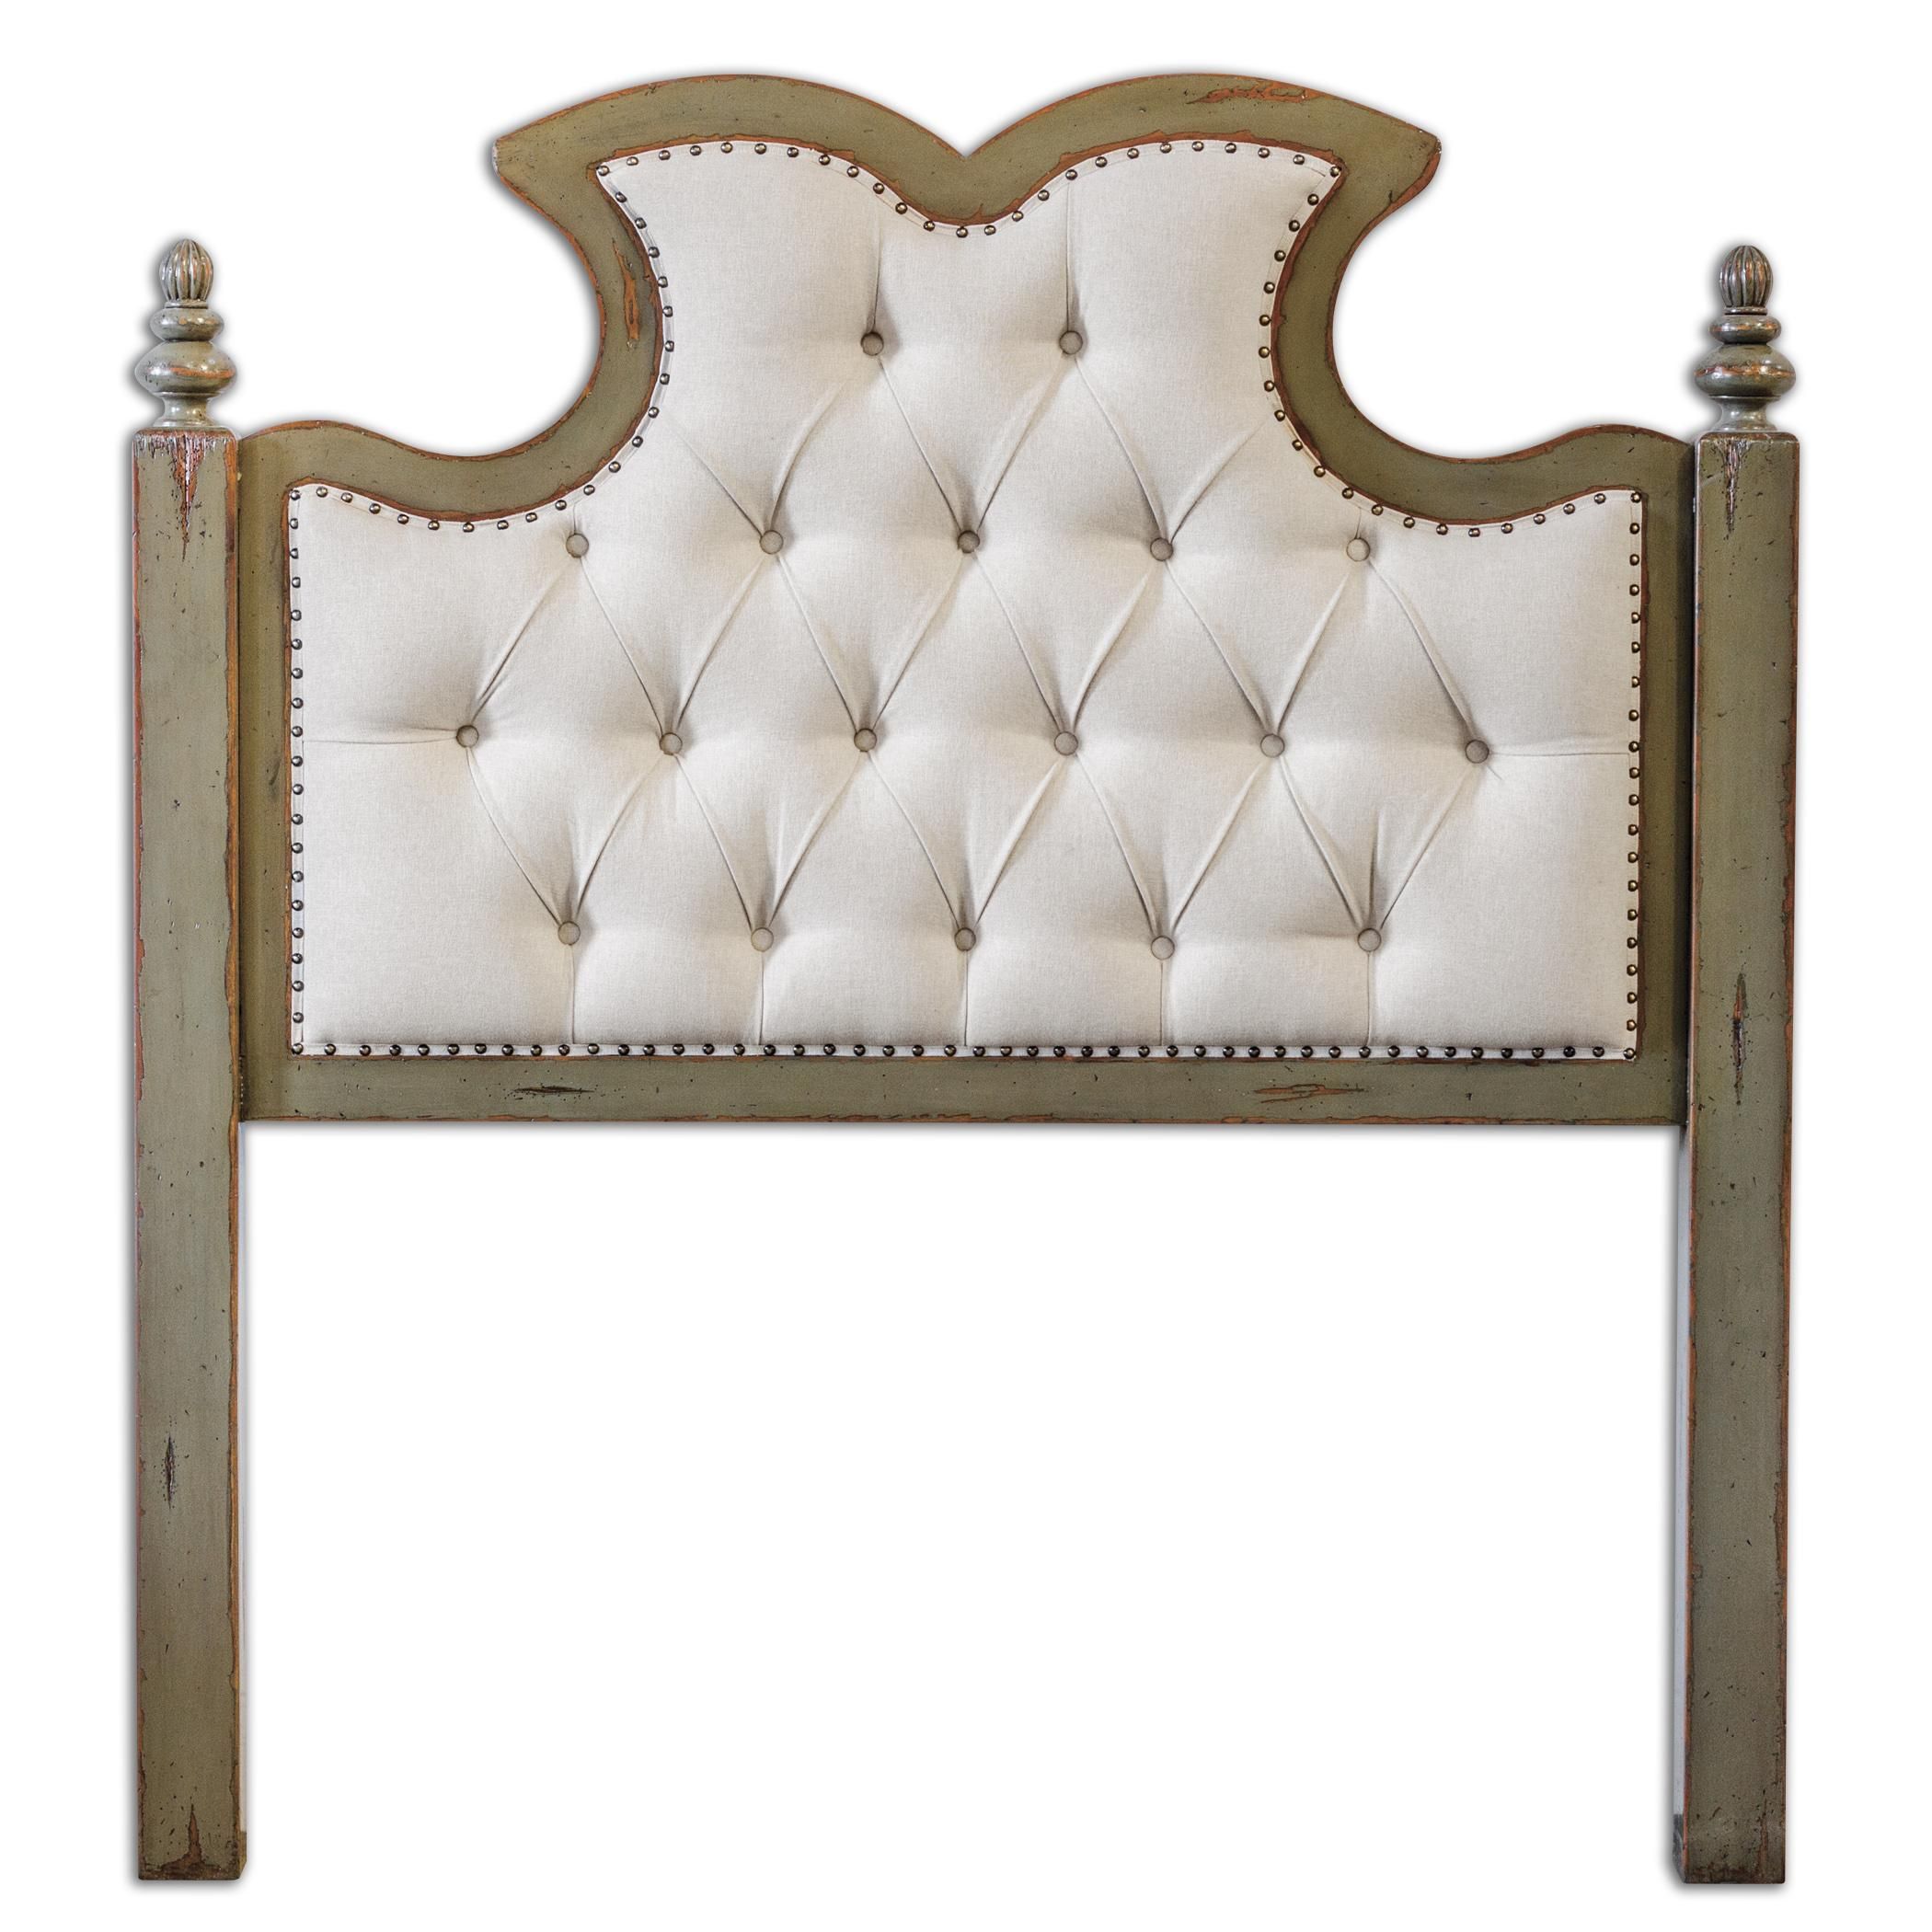 Uttermost Accent Furniture Radcliff Tufted Queen Headboard - Item Number: 23700